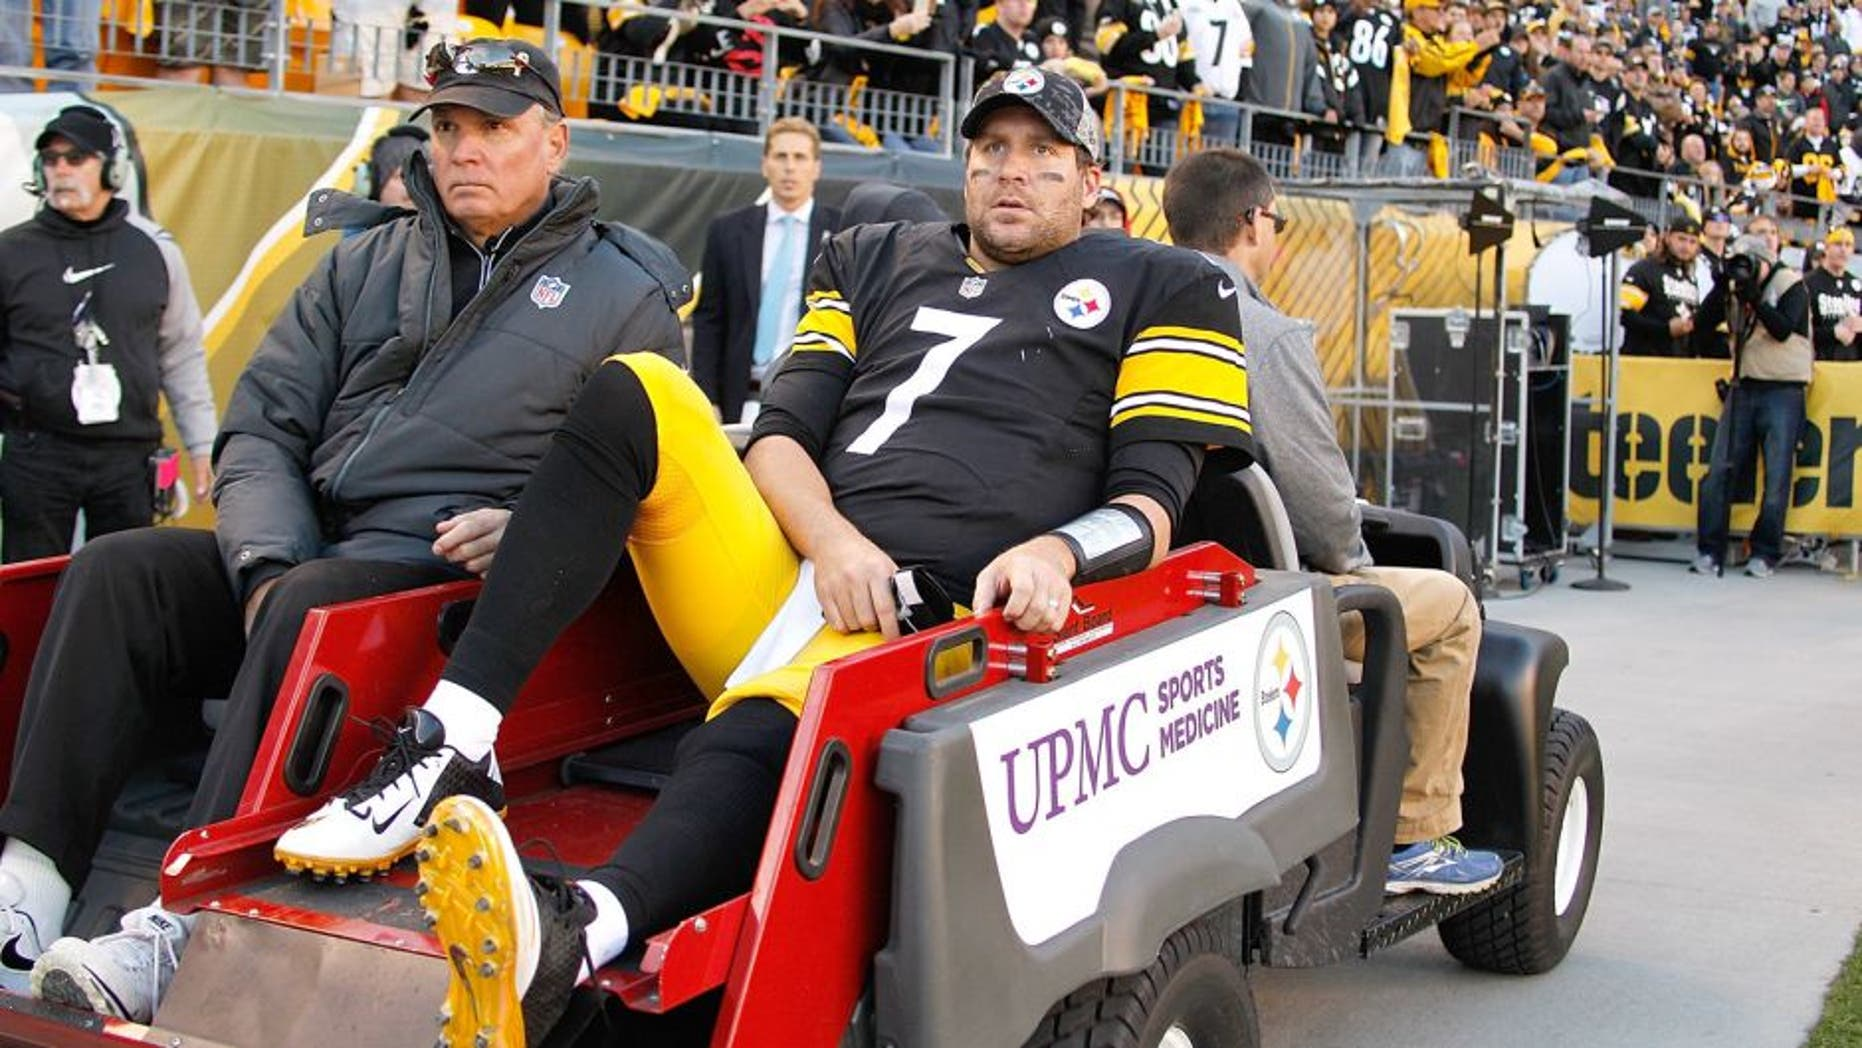 PITTSBURGH, PA - NOVEMBER 08: Ben Roethlisberger #7 of the Pittsburgh Steelers is carted off of the field after being injured in the 4th quarter of the game against the Oakland Raiders at Heinz Field on November 8, 2015 in Pittsburgh, Pennsylvania. (Photo by Justin K. Aller/Getty Images)